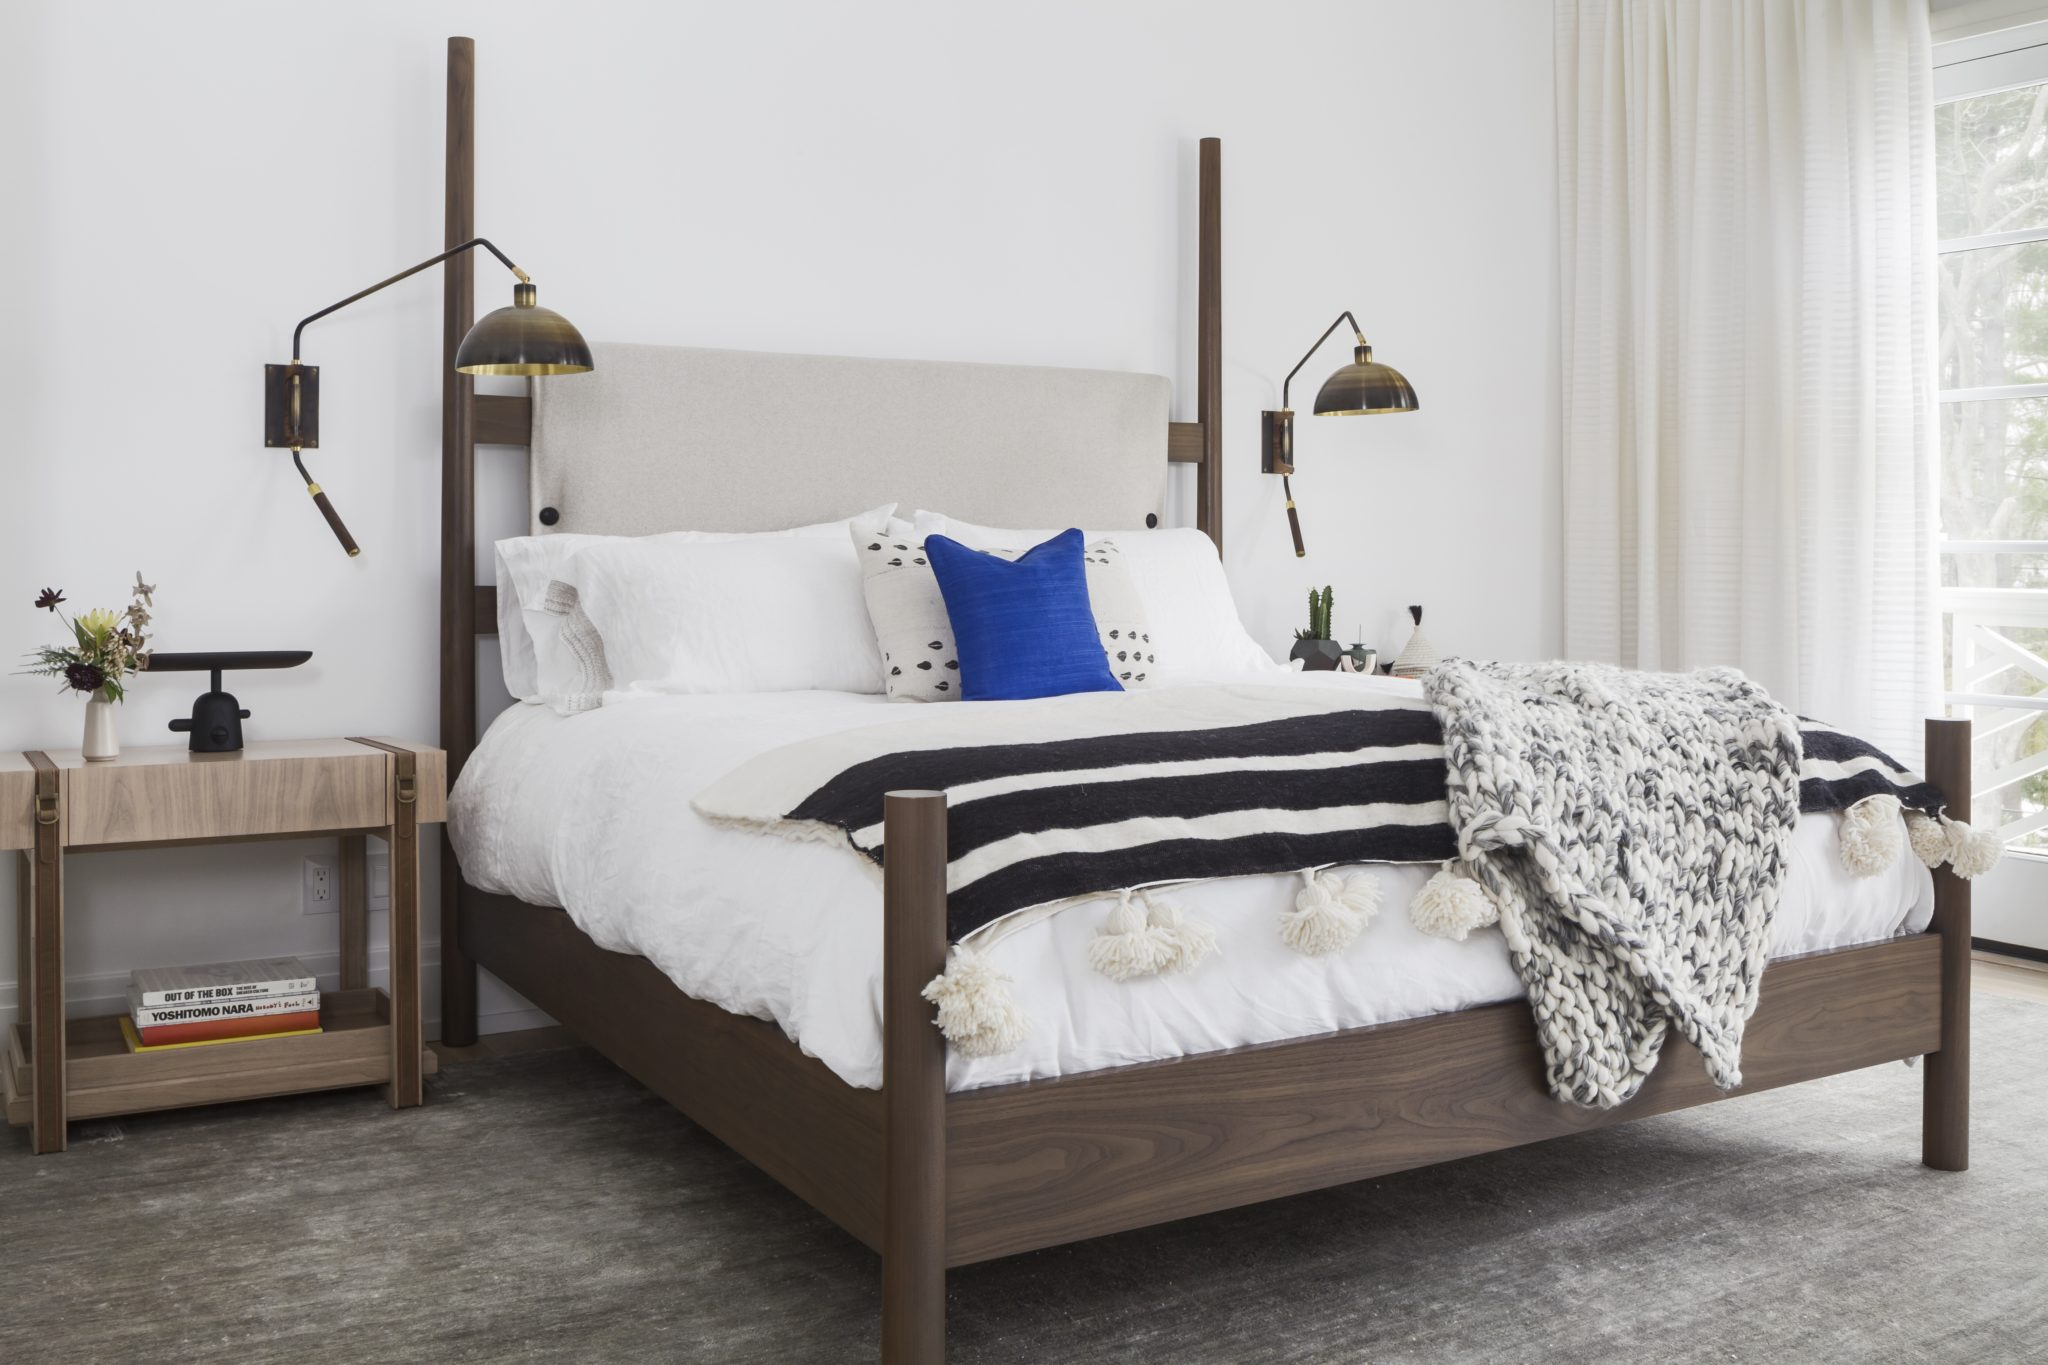 A Scarsdale home - master bedroom with custom bed and bedside tables by Current Interiors